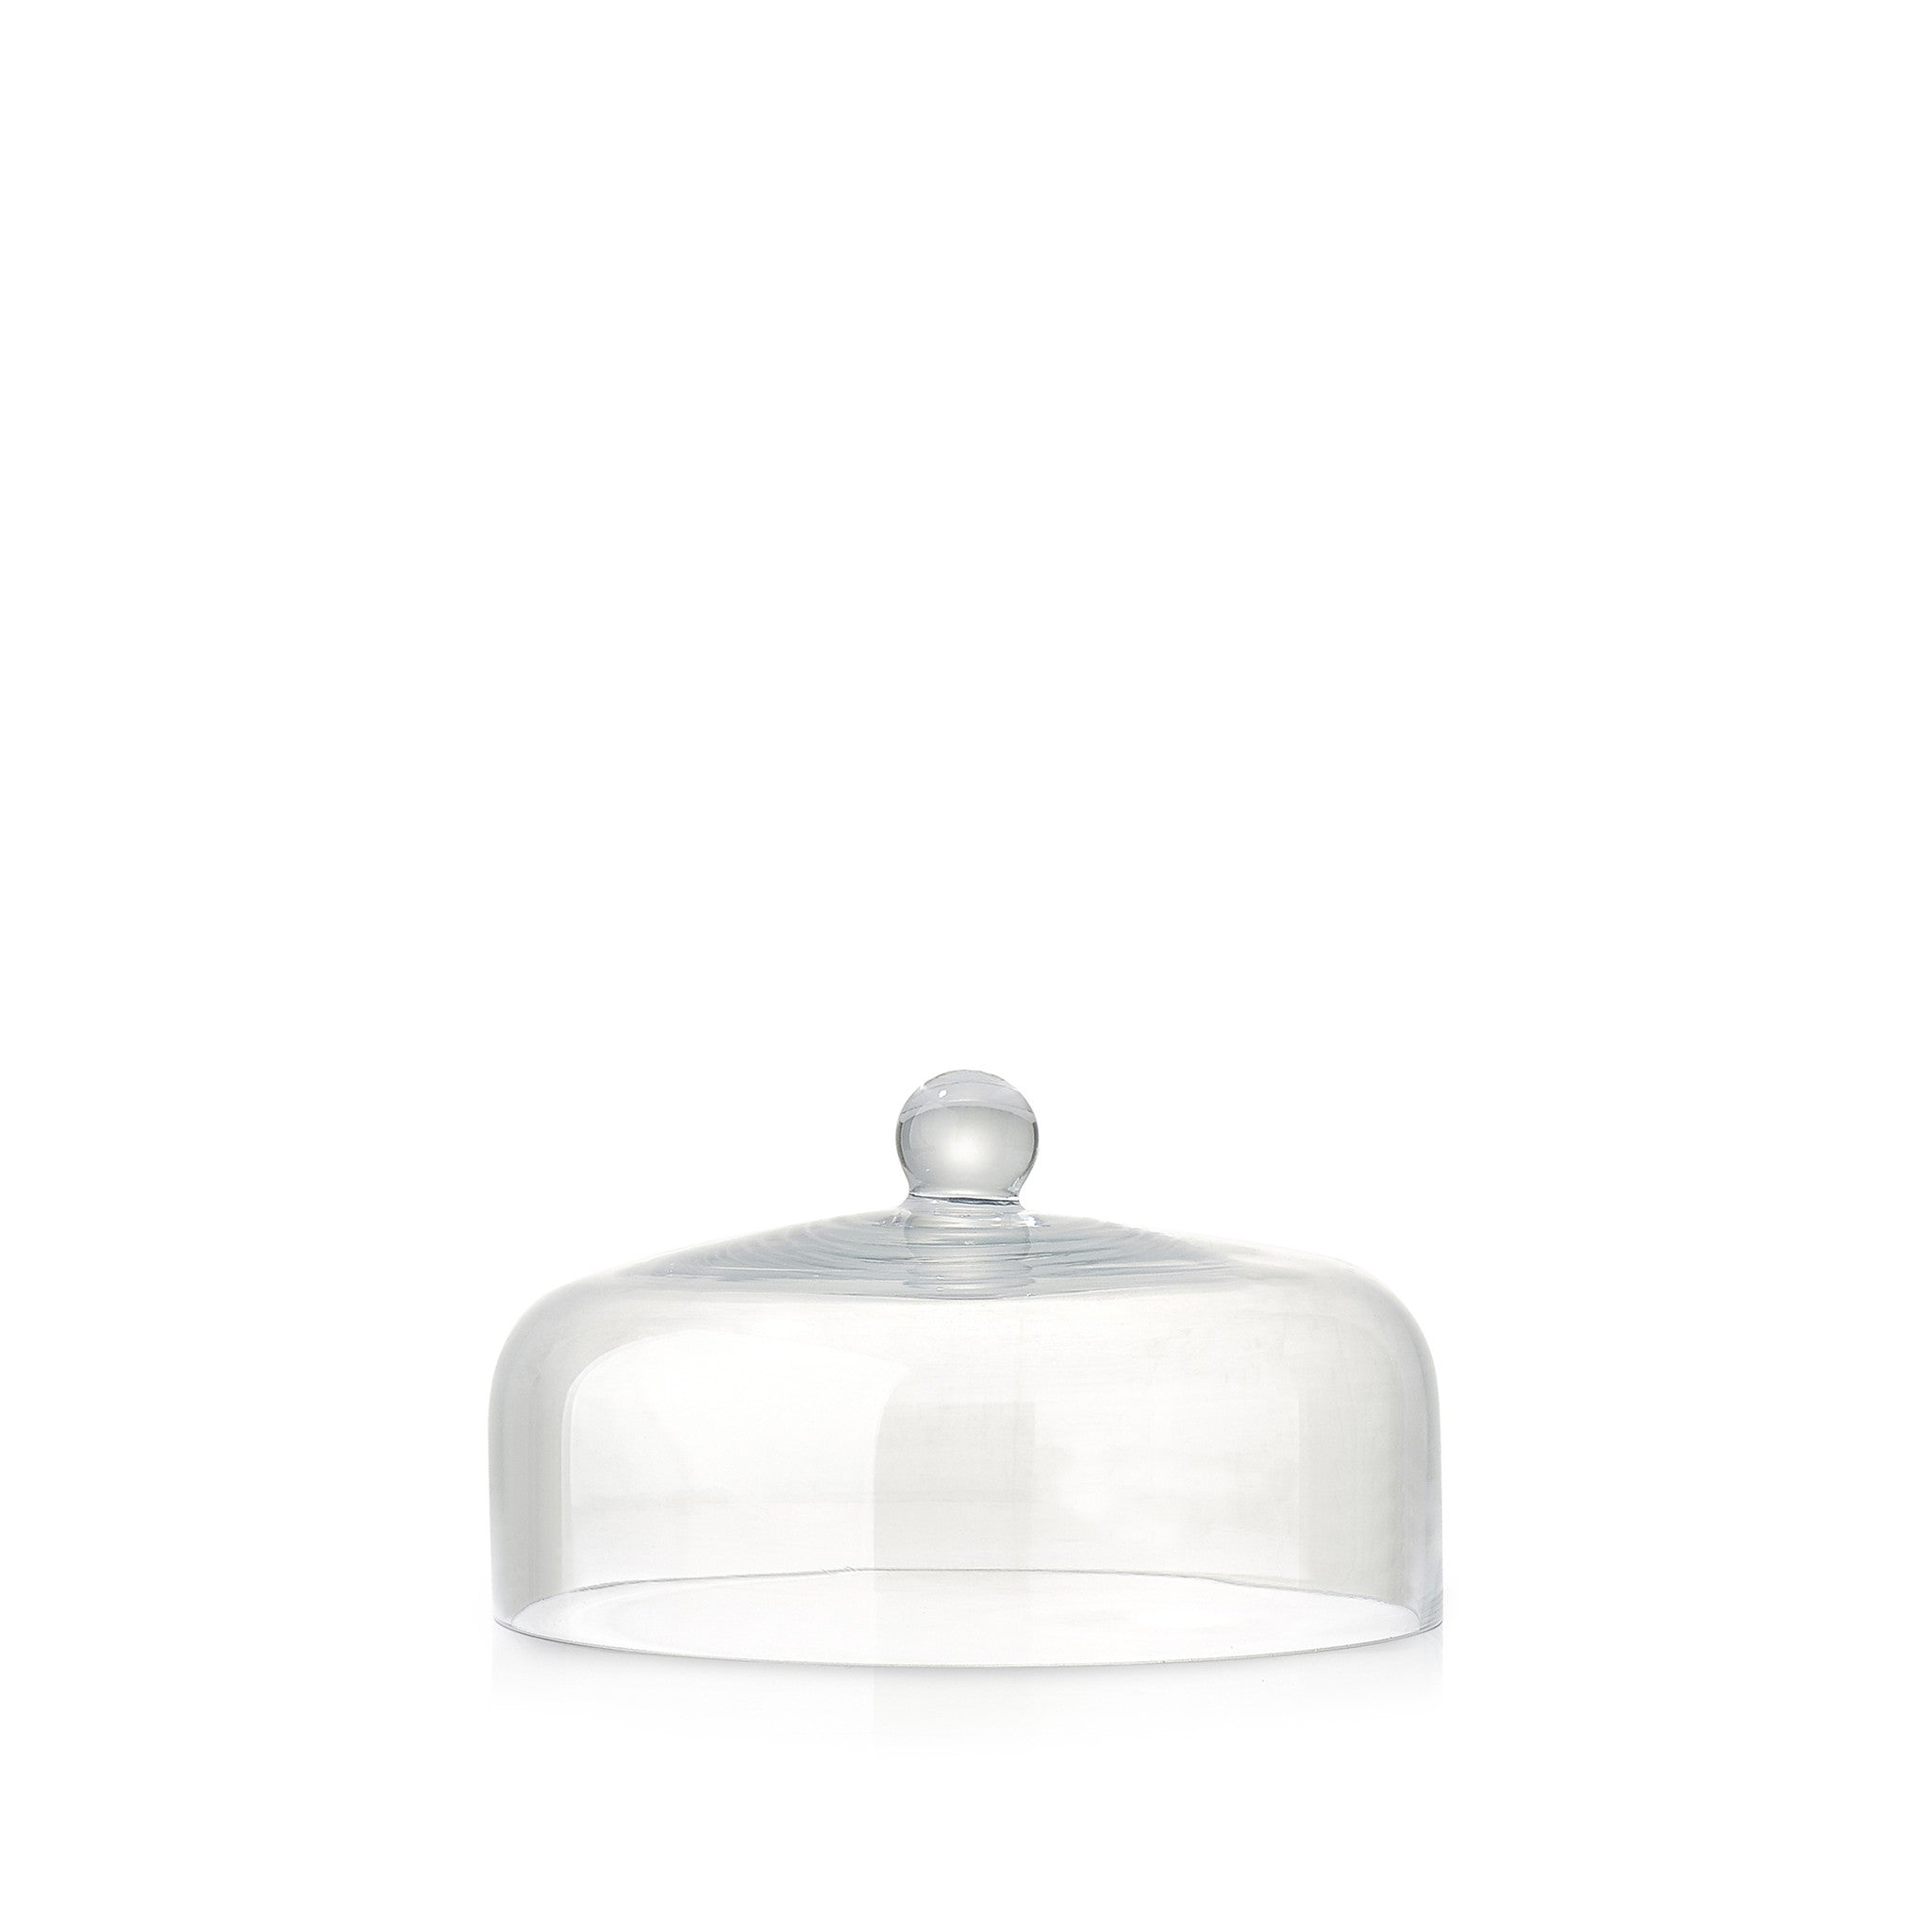 Dome Shaped Glass Cloche, 12cm